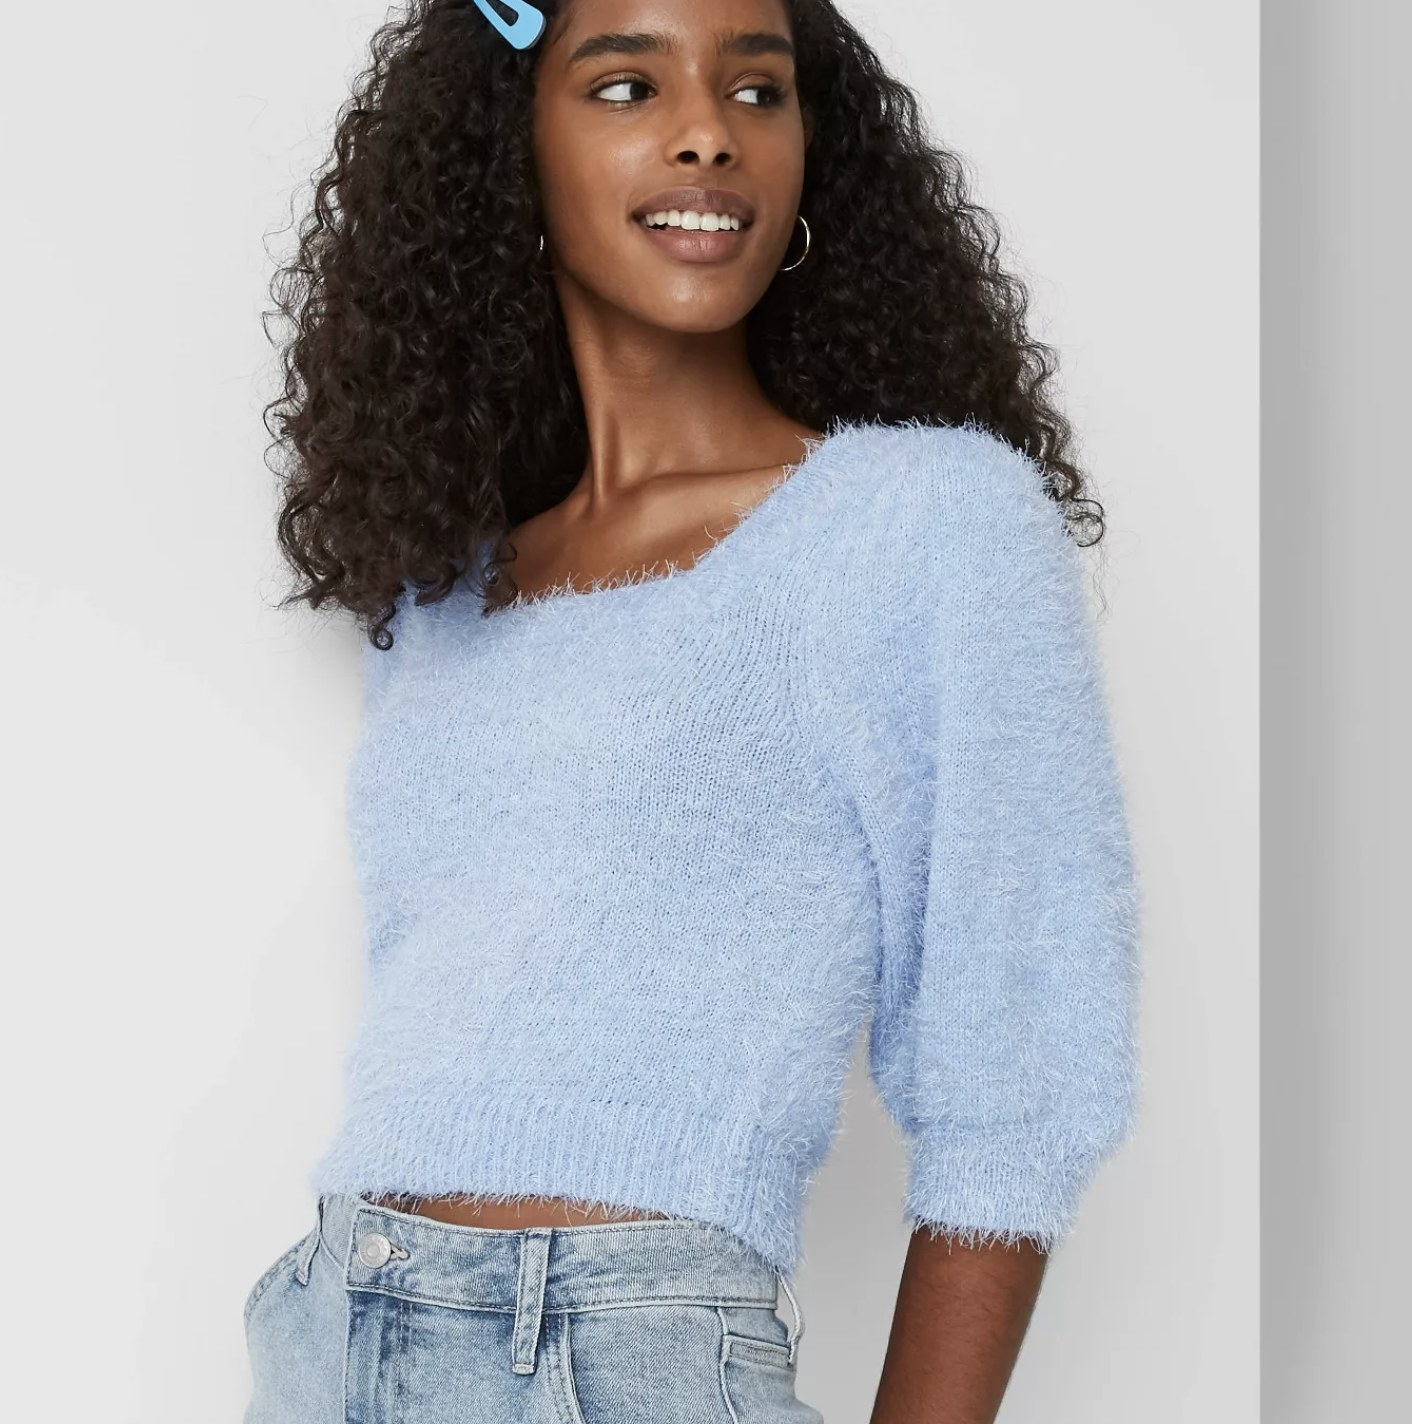 Model is wearing a light blue fuzzy cropped sweater with a square neckline